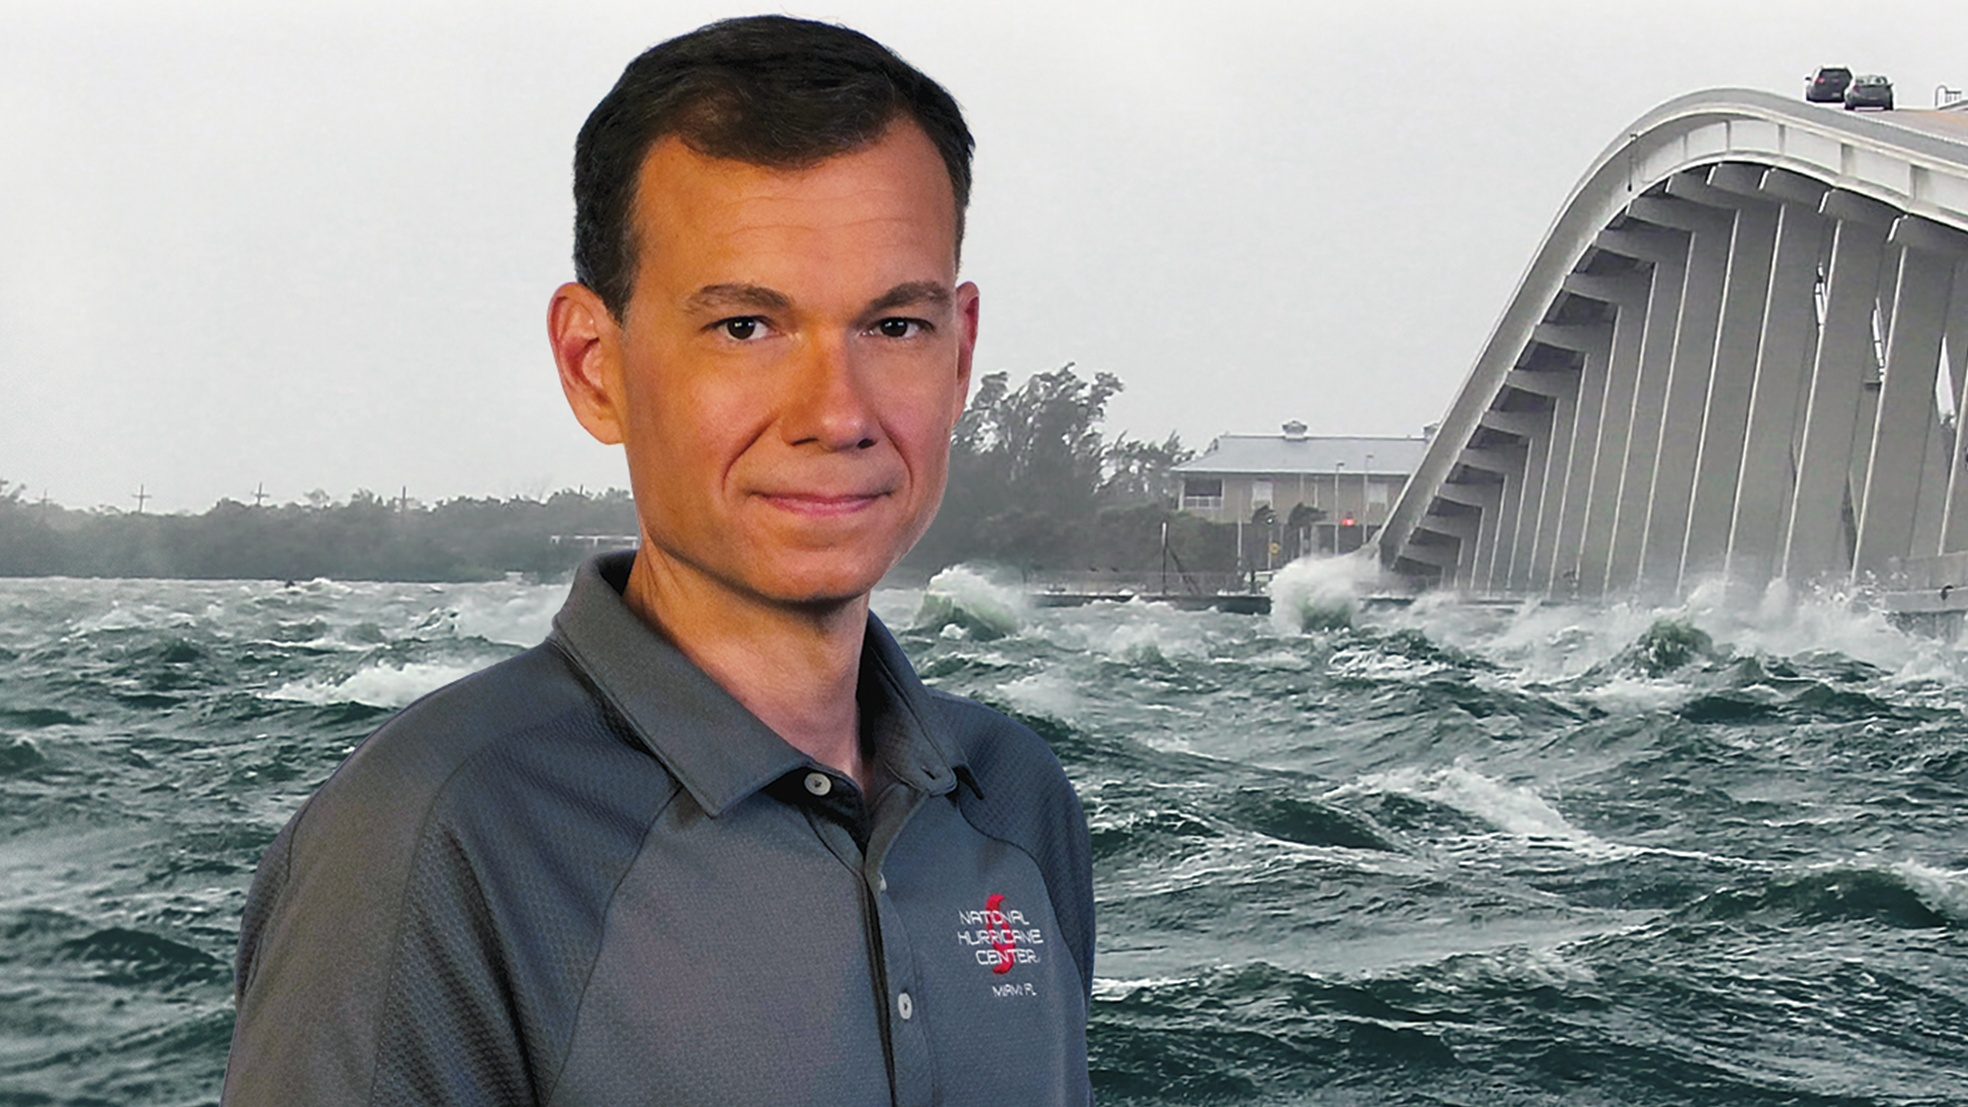 Jaime Rhome, storm surge specialist and team lead at the National Hurricane Center and recipient of the Safety and Law Enforcement Medal. (Braun Film and Video, Inc.)